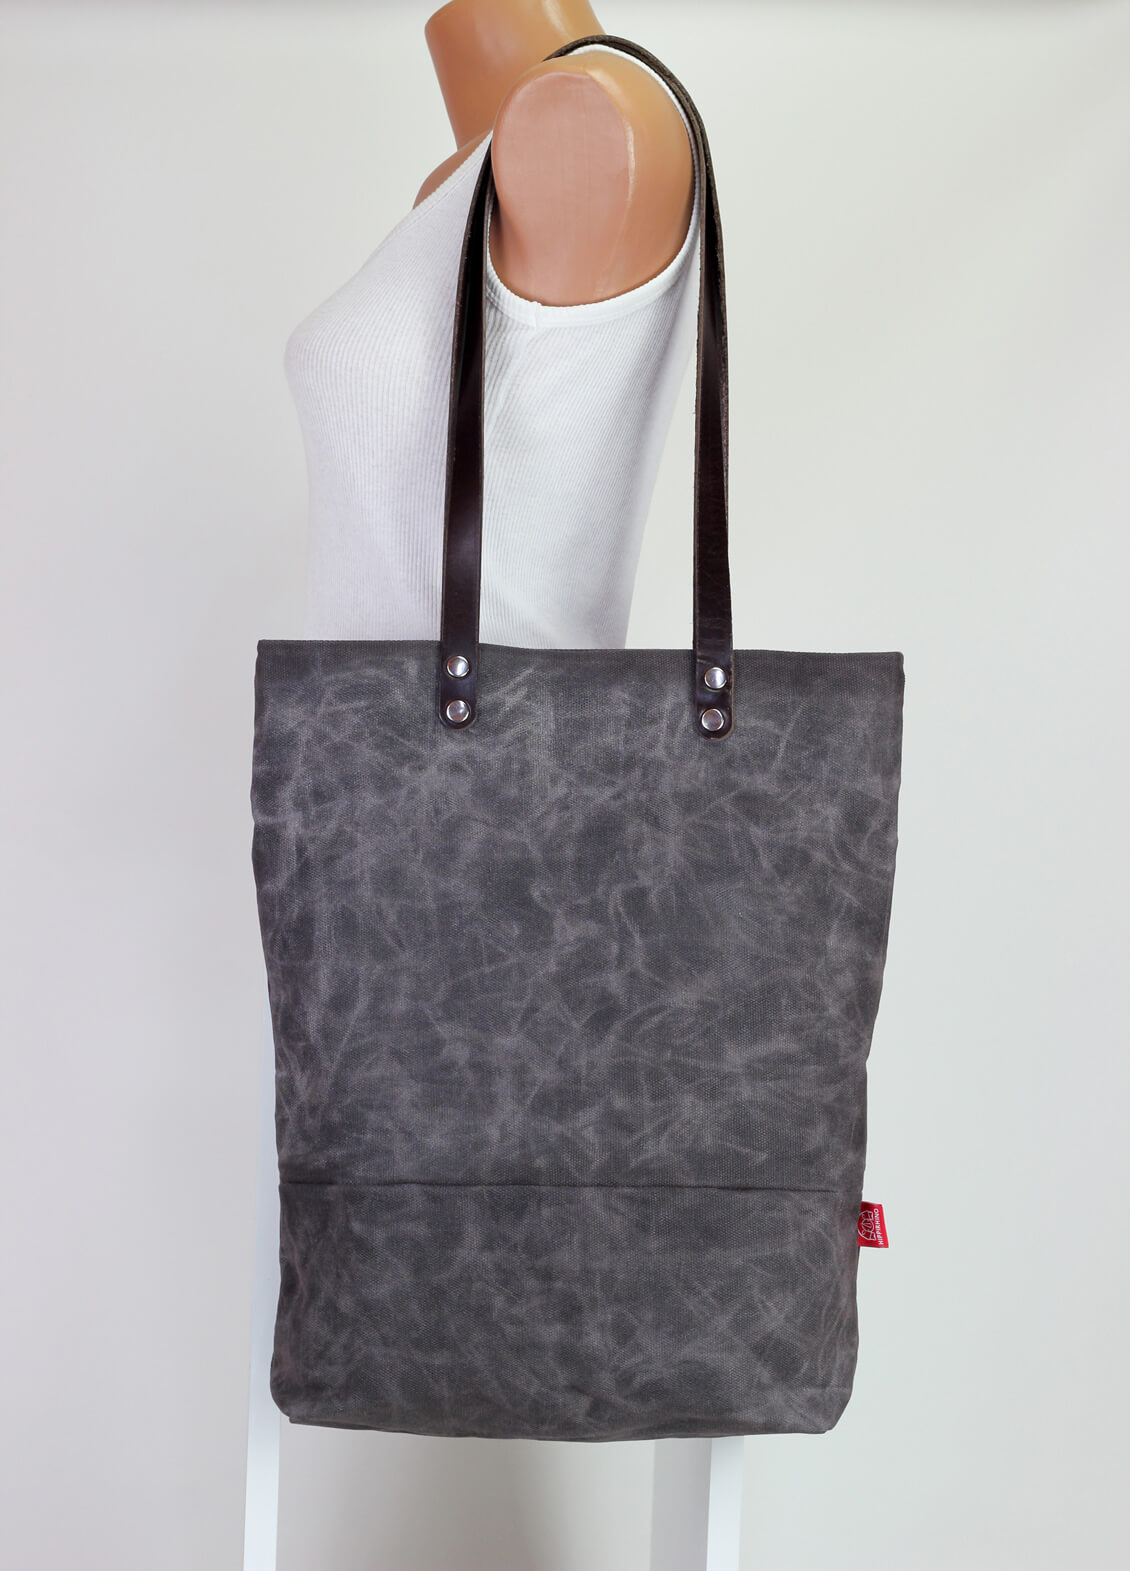 0081f149e2af ... shoulder use magnetic snap closure fully cotton lined simply minimalist  useful large. 🔍. Waxed tote bag with leather strap · Waxed tote bag with  ...